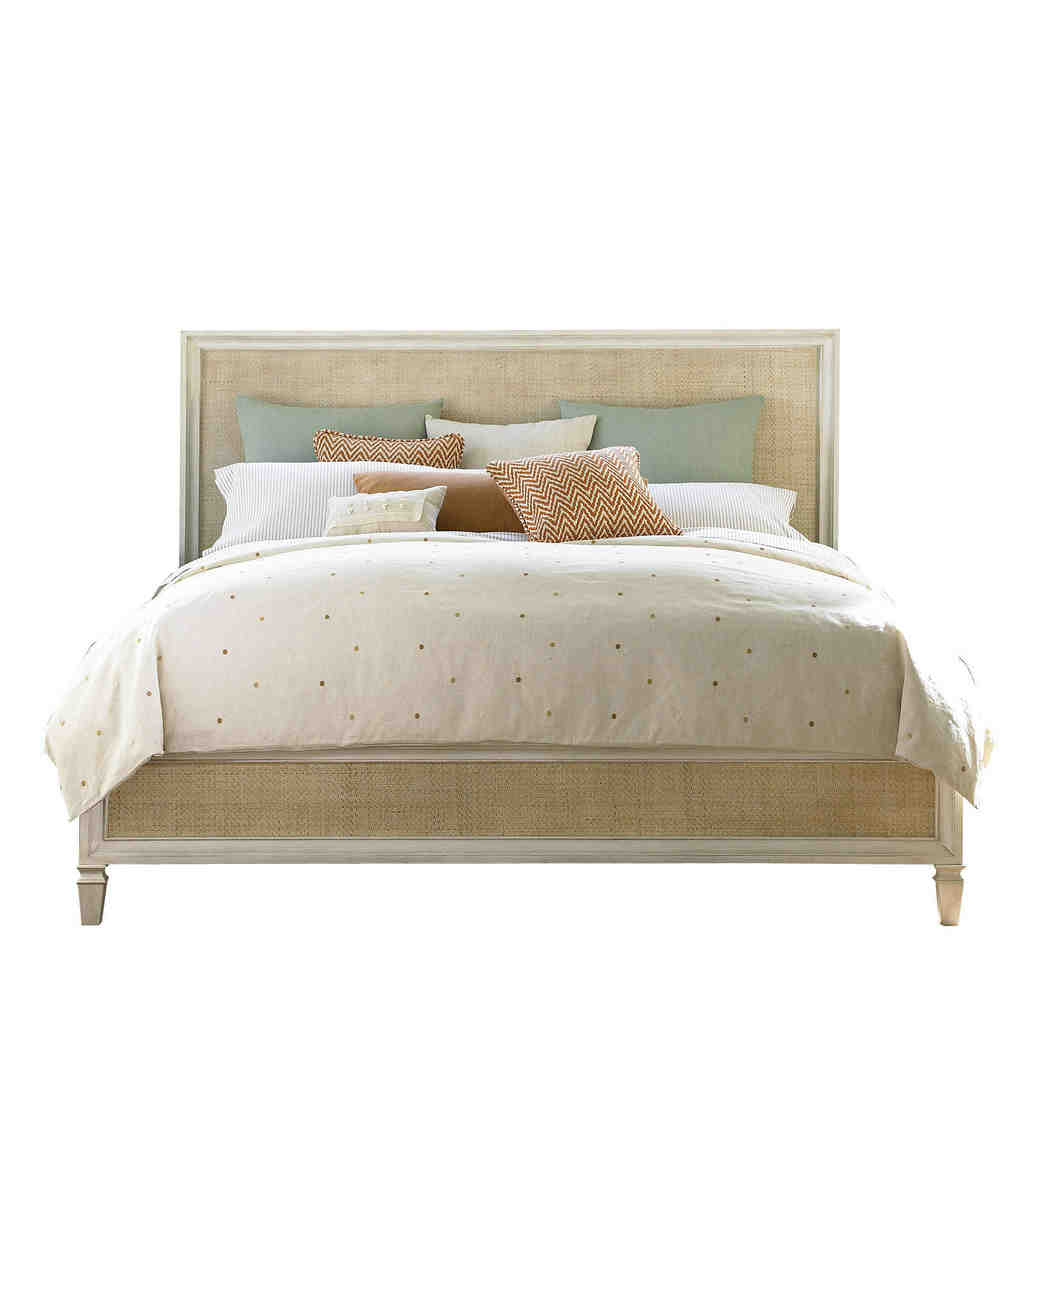 willow anniversary gift rattan bed sheets